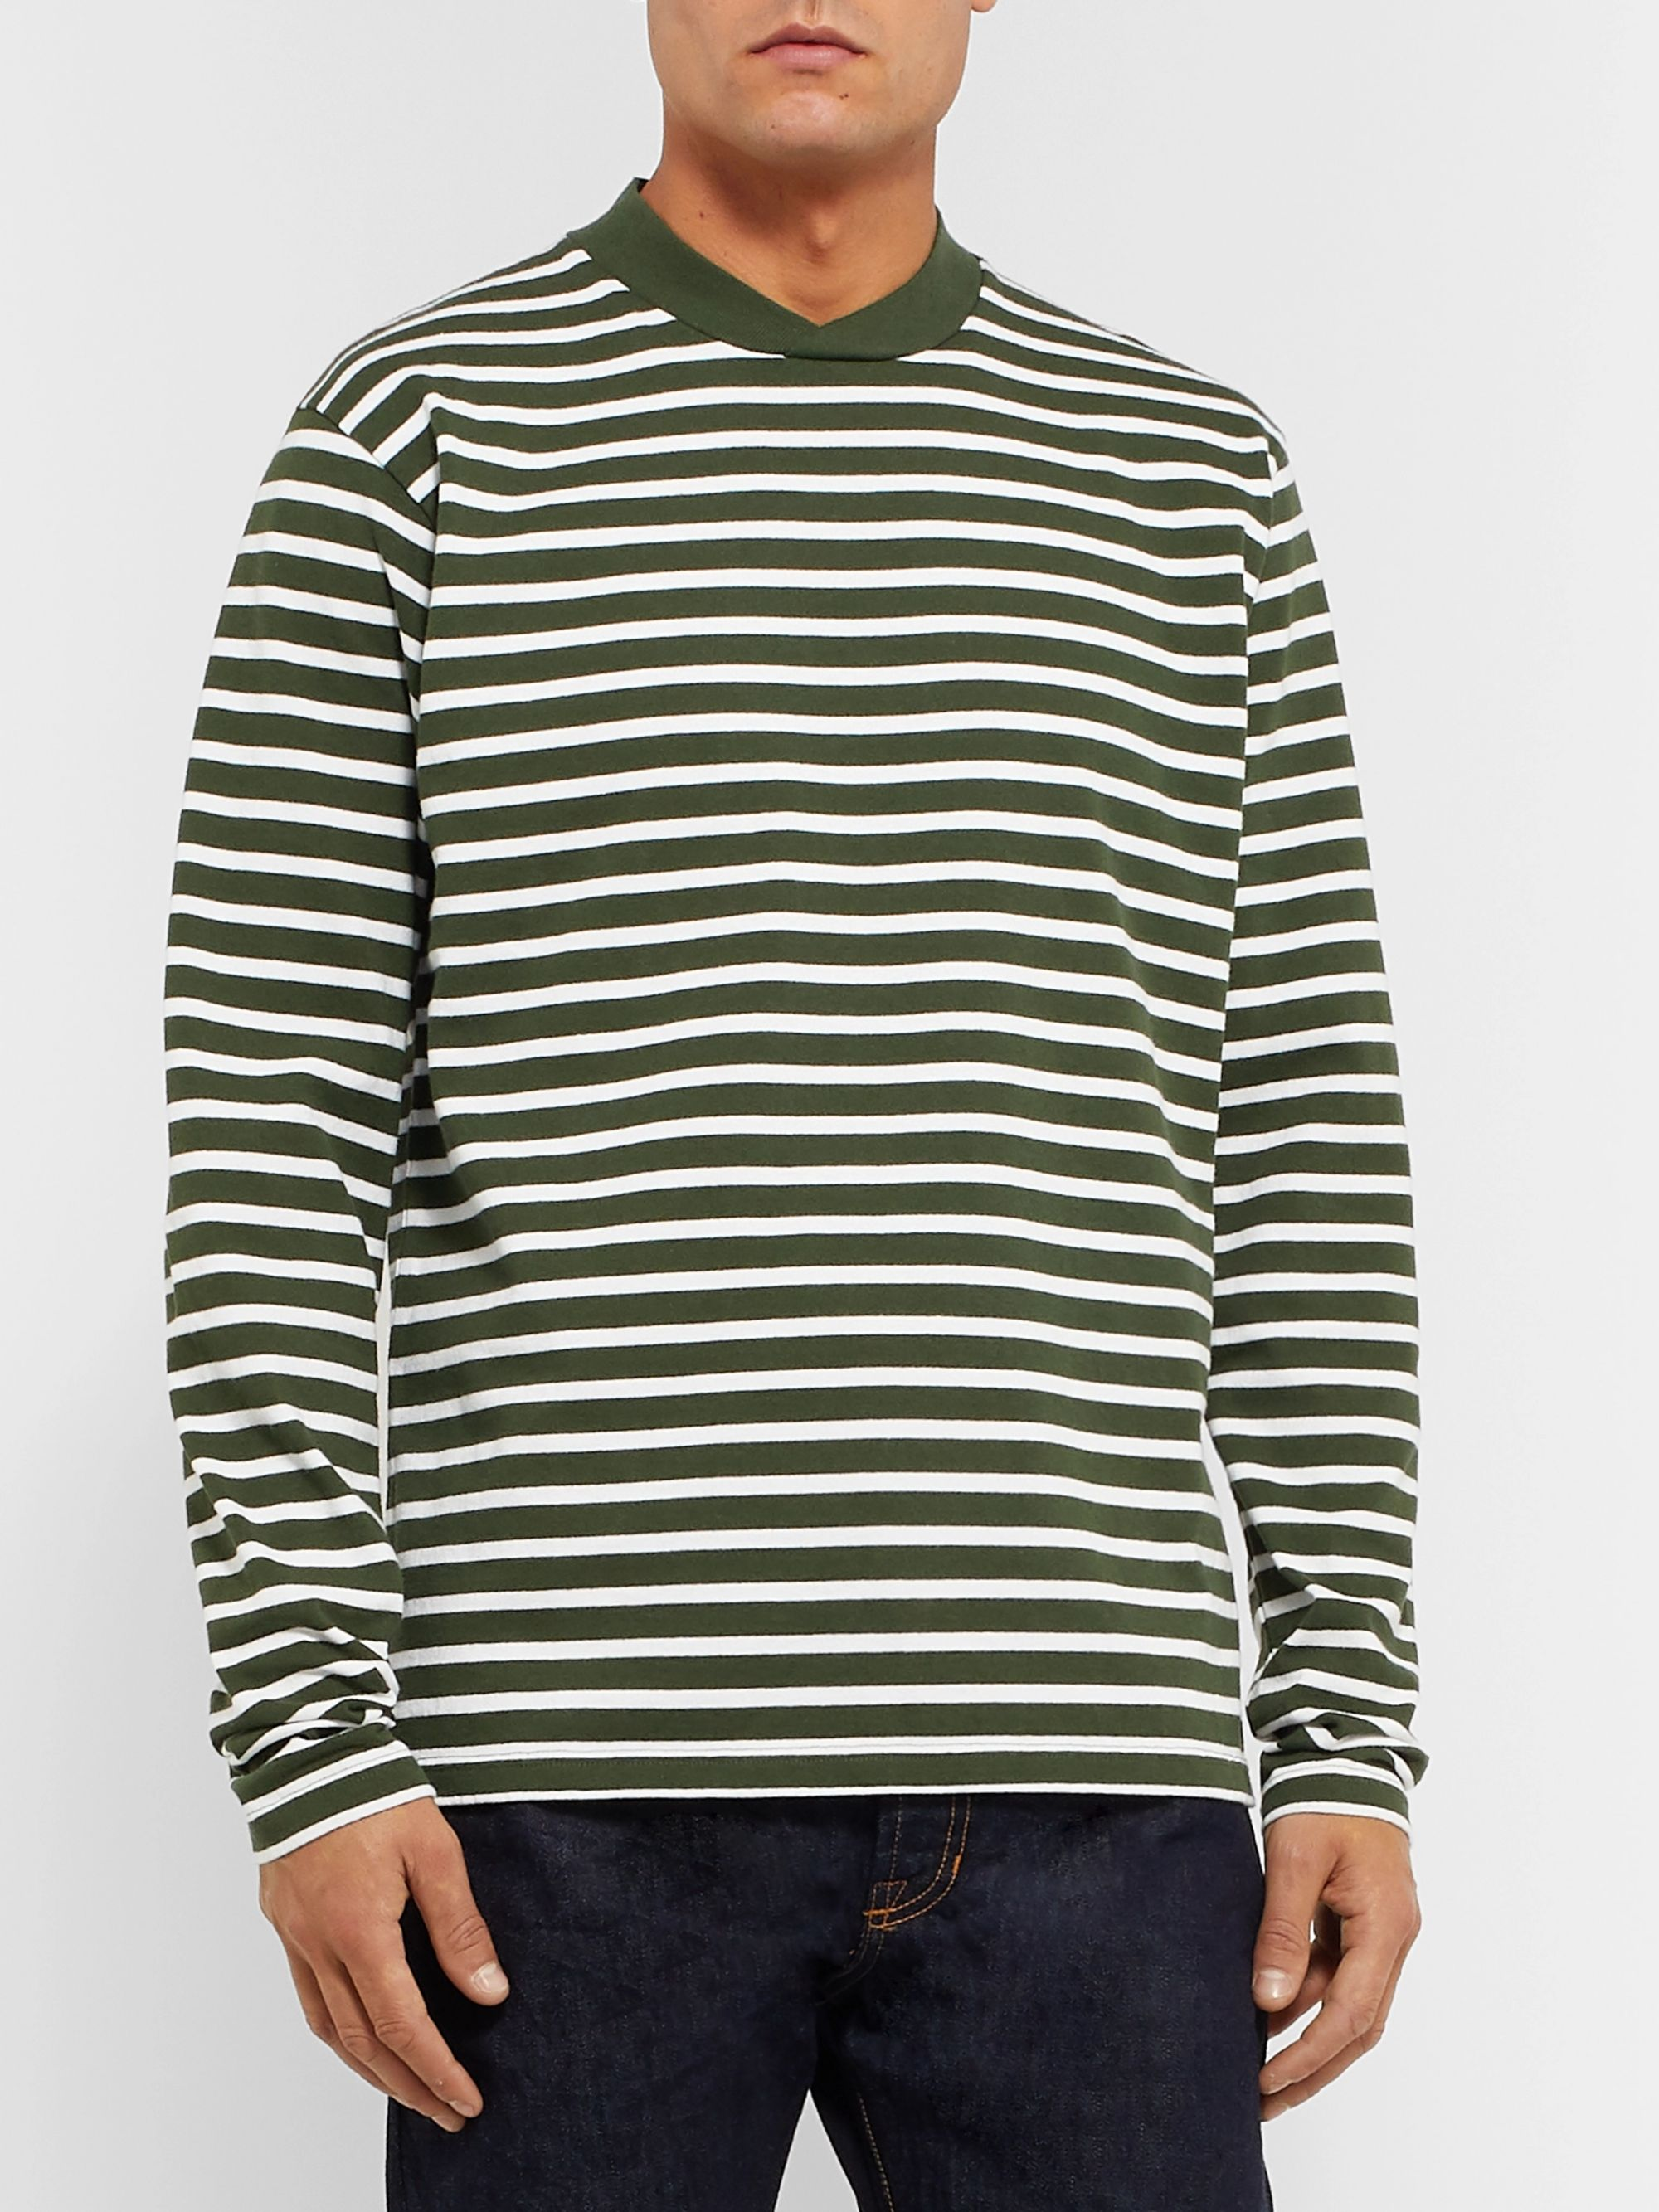 BARBOUR WHITE LABEL White Label Lanercost Striped Cotton-Jersey T-Shirt